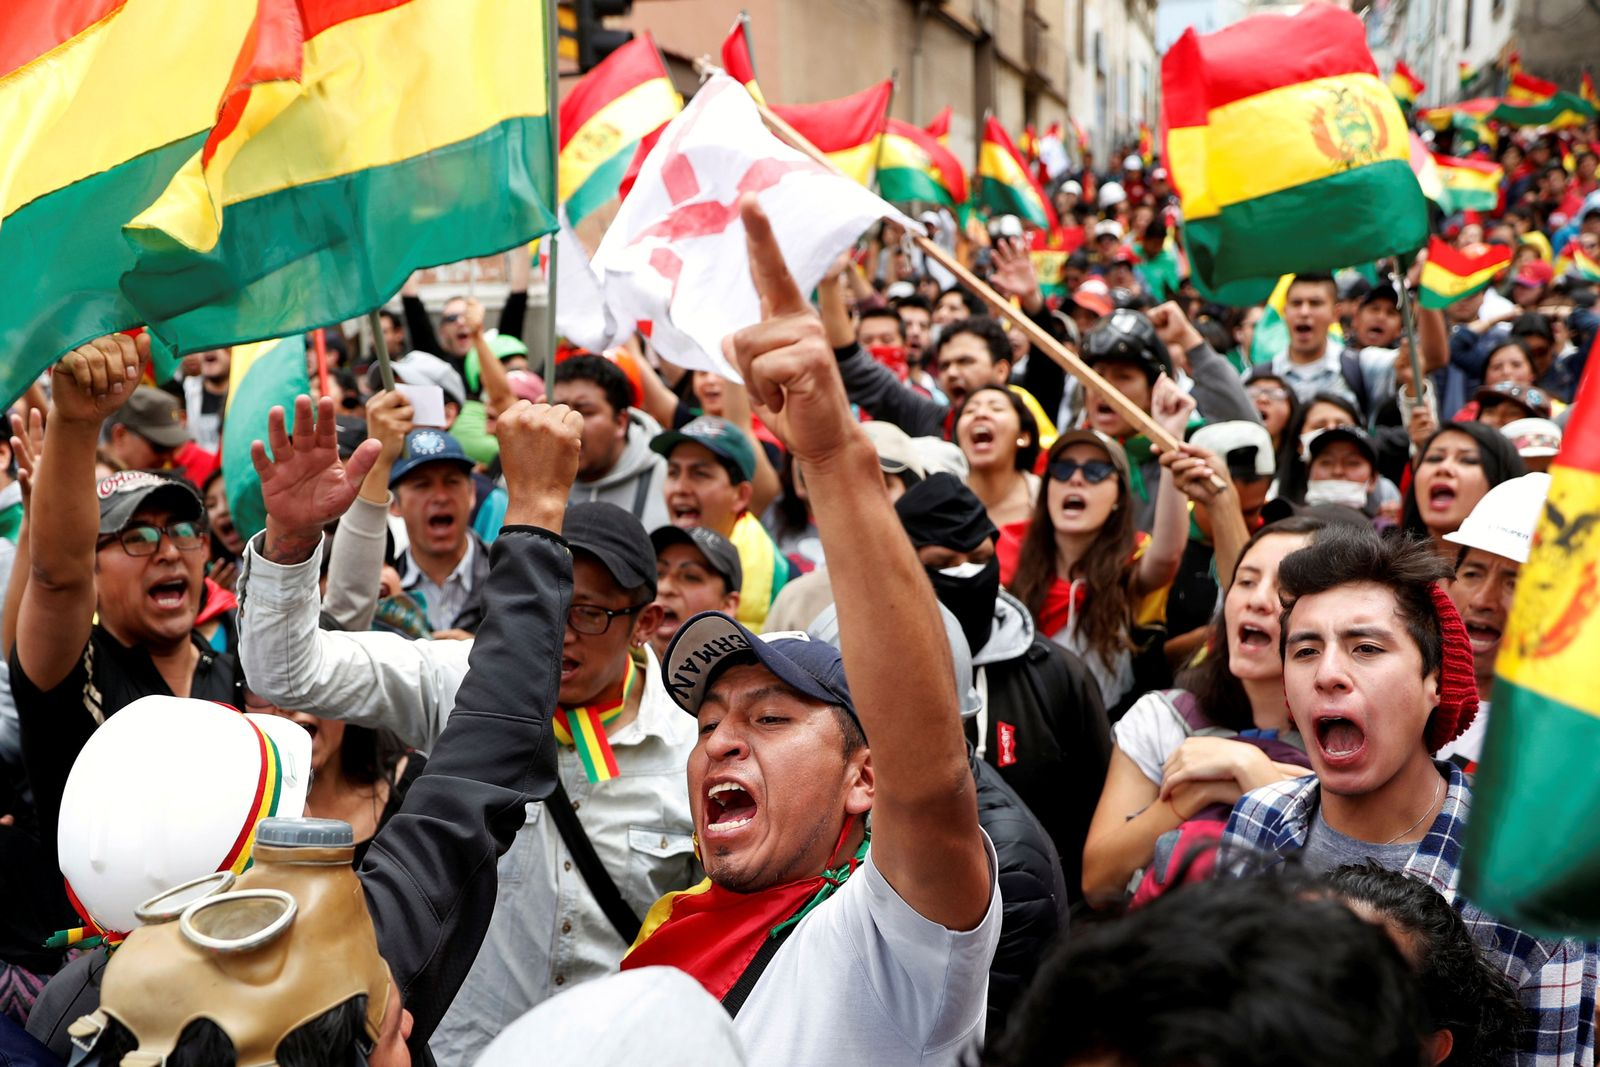 BOLIVIA-ELECTION/PROTESTS